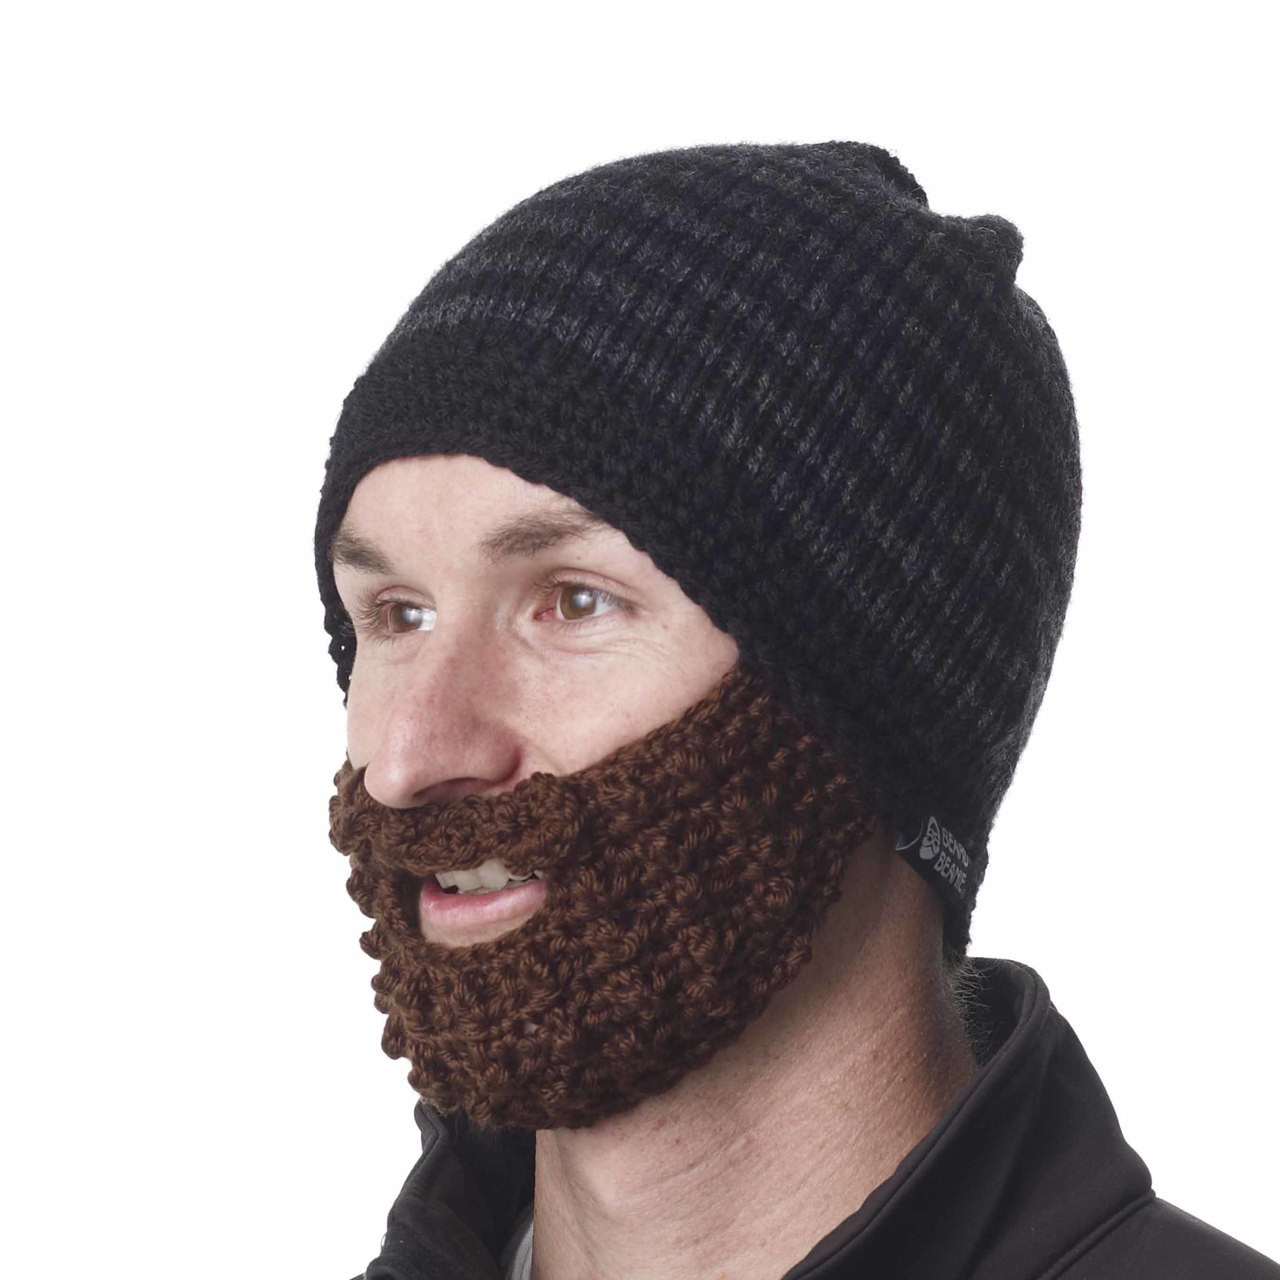 37a173a6b36 ... The Original Beard Beanie™ Charcoal Striped 100% Hand Made. Loading zoom